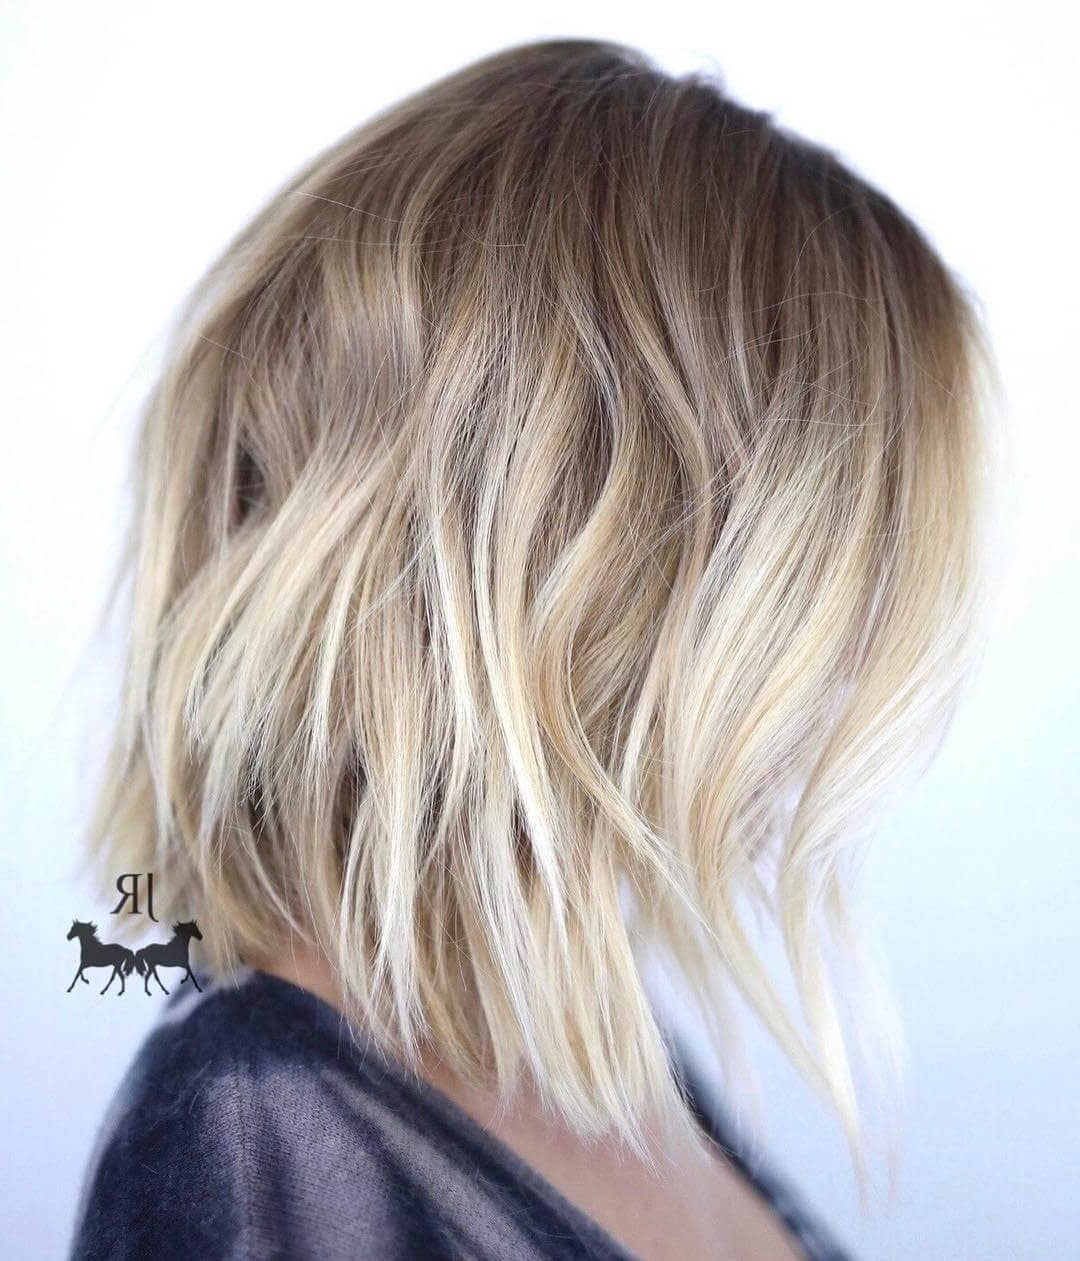 50 Fresh Short Blonde Hair Ideas To Update Your Style In 2018 With Ash Blonde Short Hairstyles (View 6 of 25)